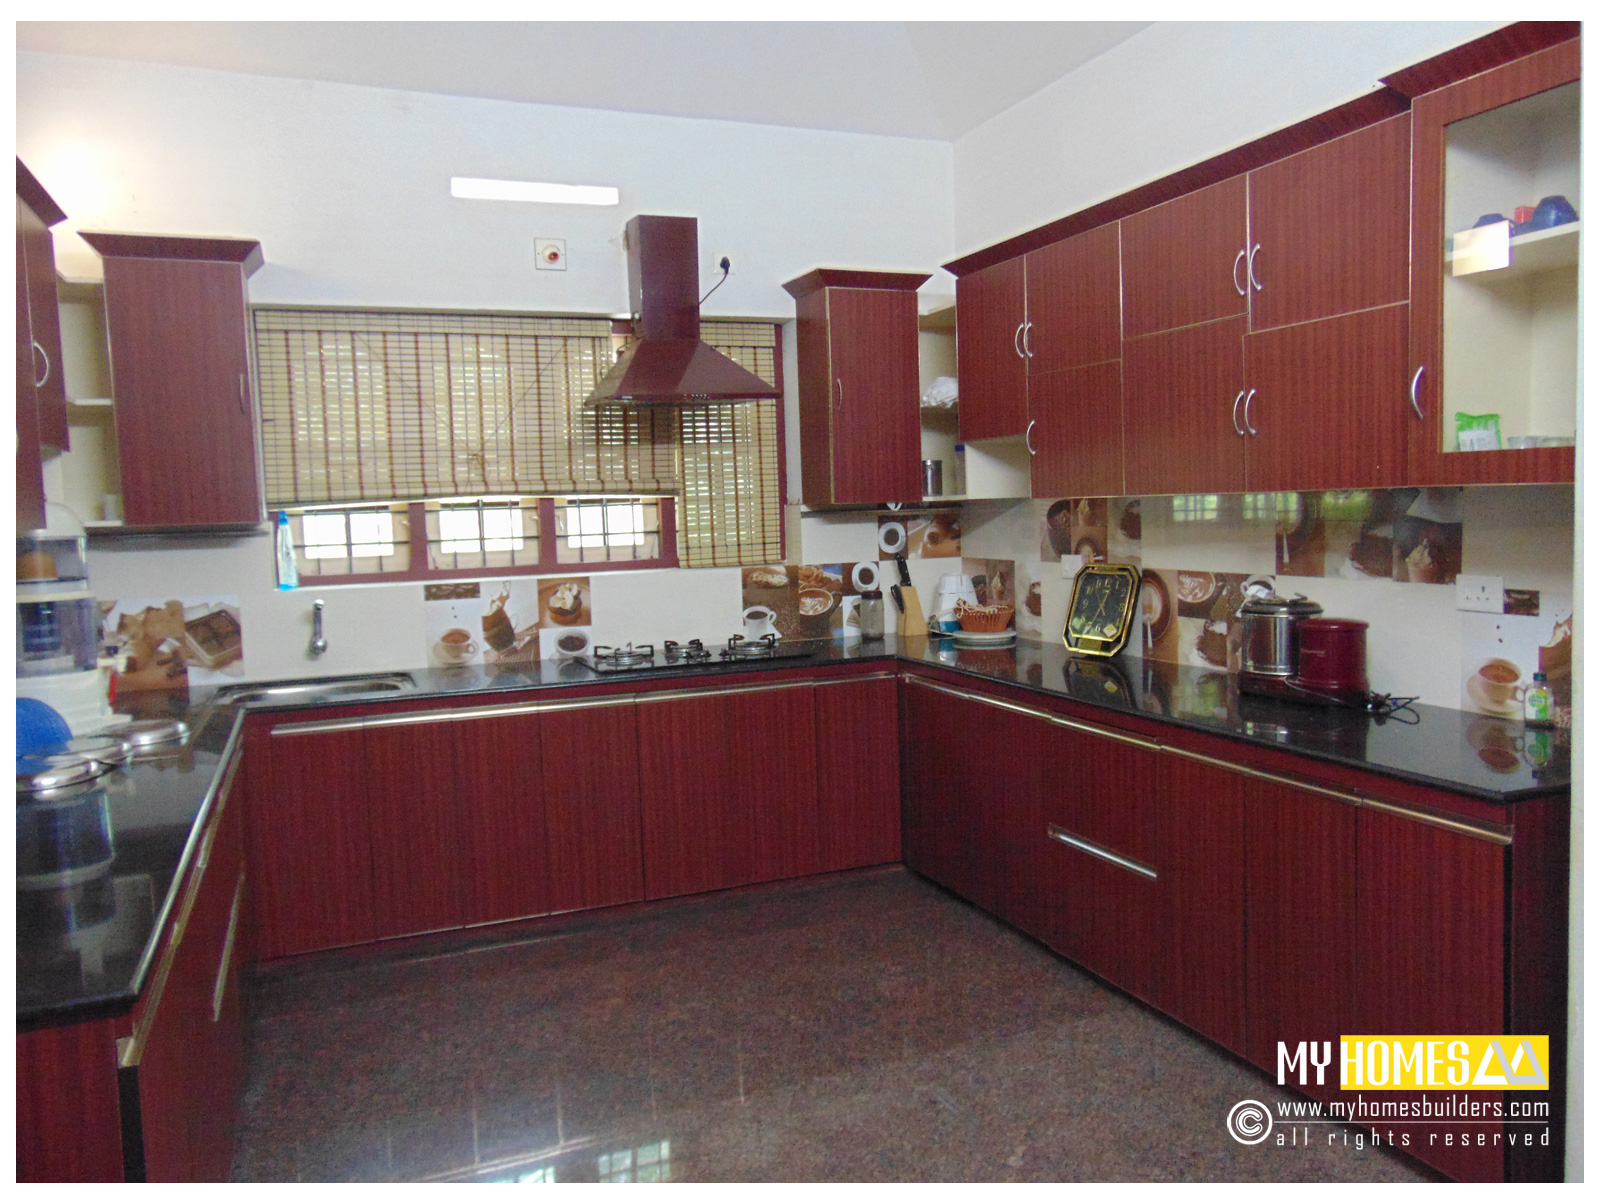 latest kitchen design kerala in modular inteior designing style. Black Bedroom Furniture Sets. Home Design Ideas